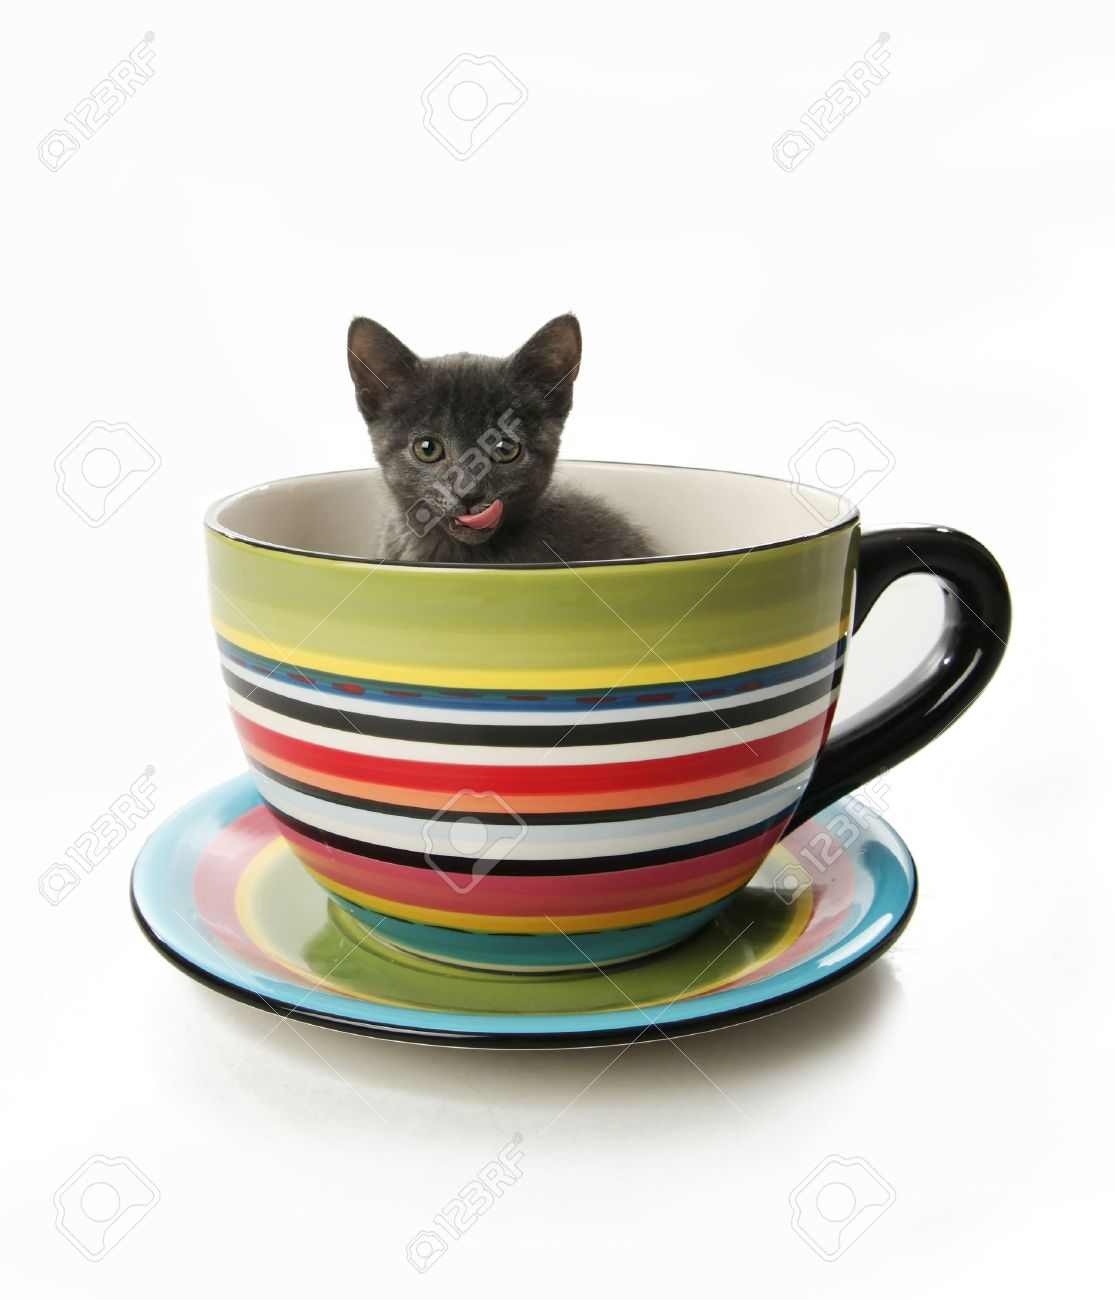 Small gray kitten in a large tea cup or mug - 8046099